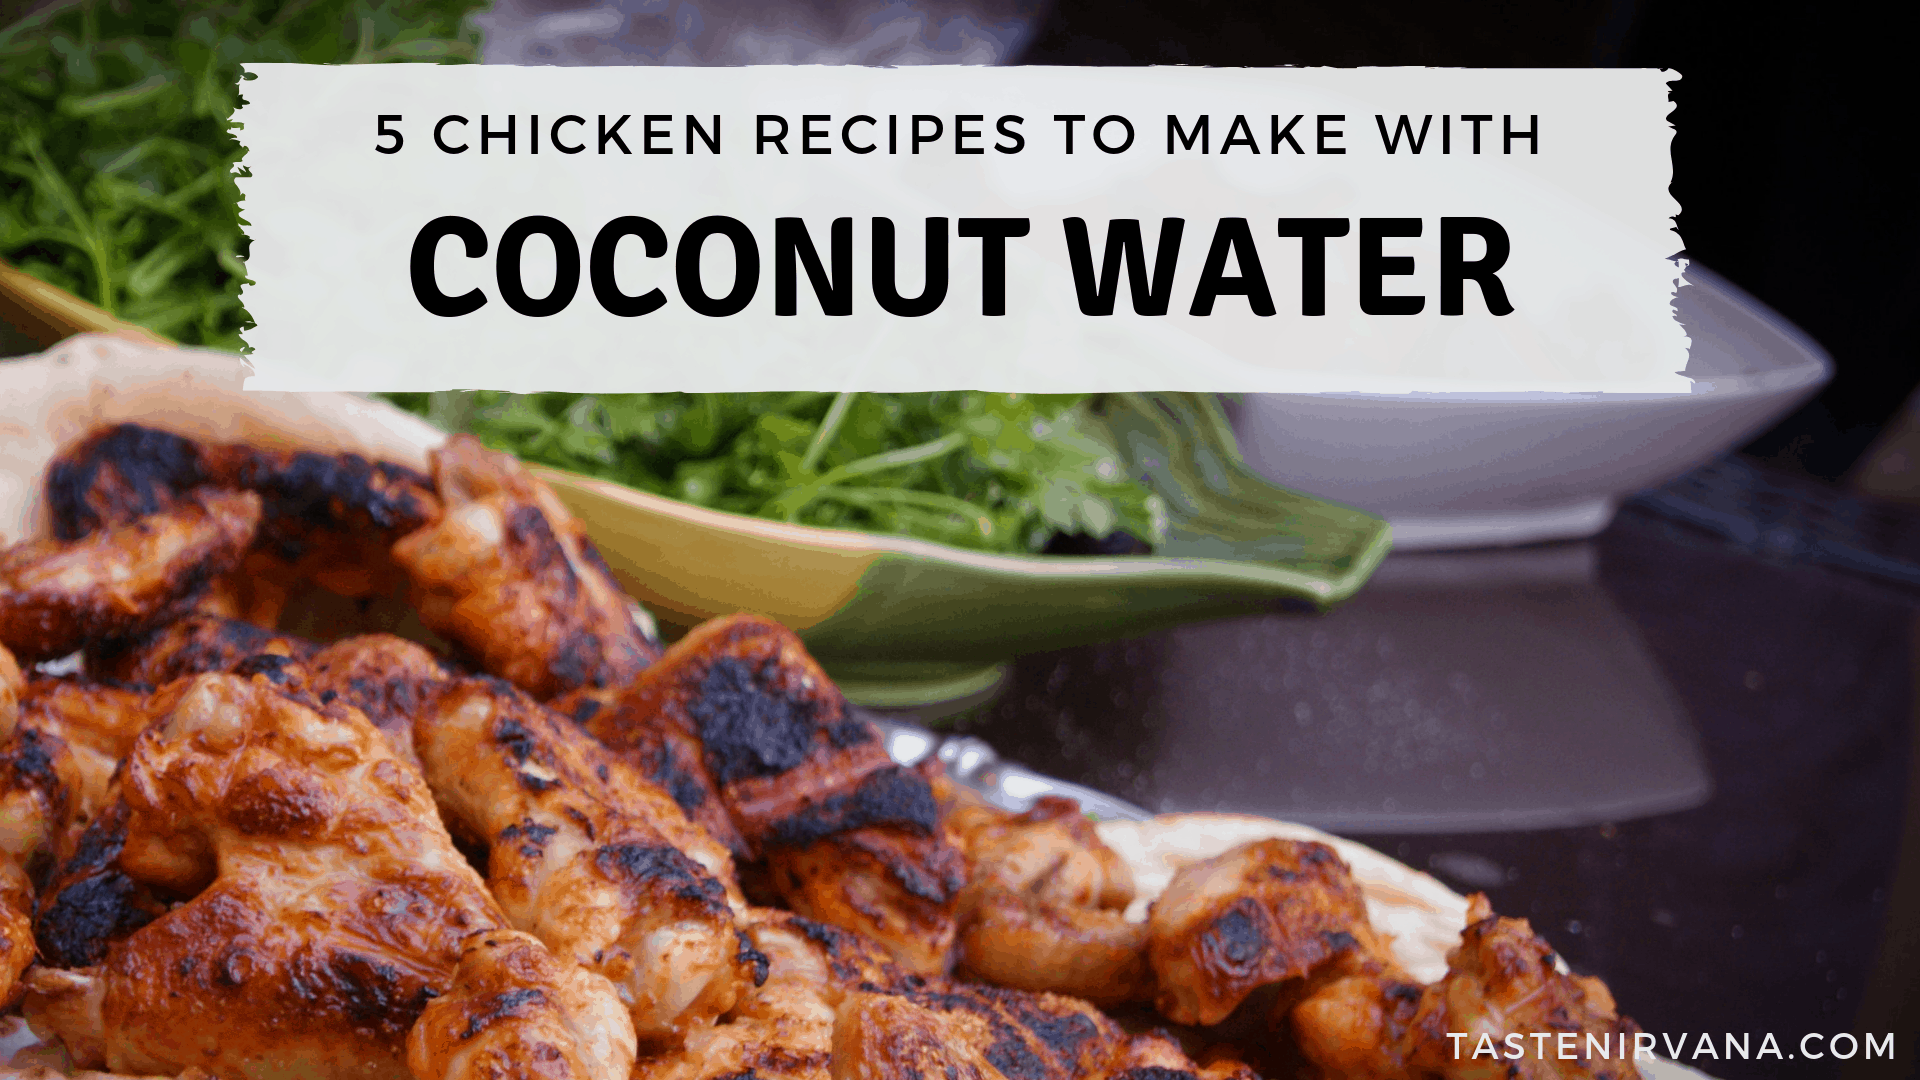 Blog Cover Five Recipes of chicken to make with coconut water